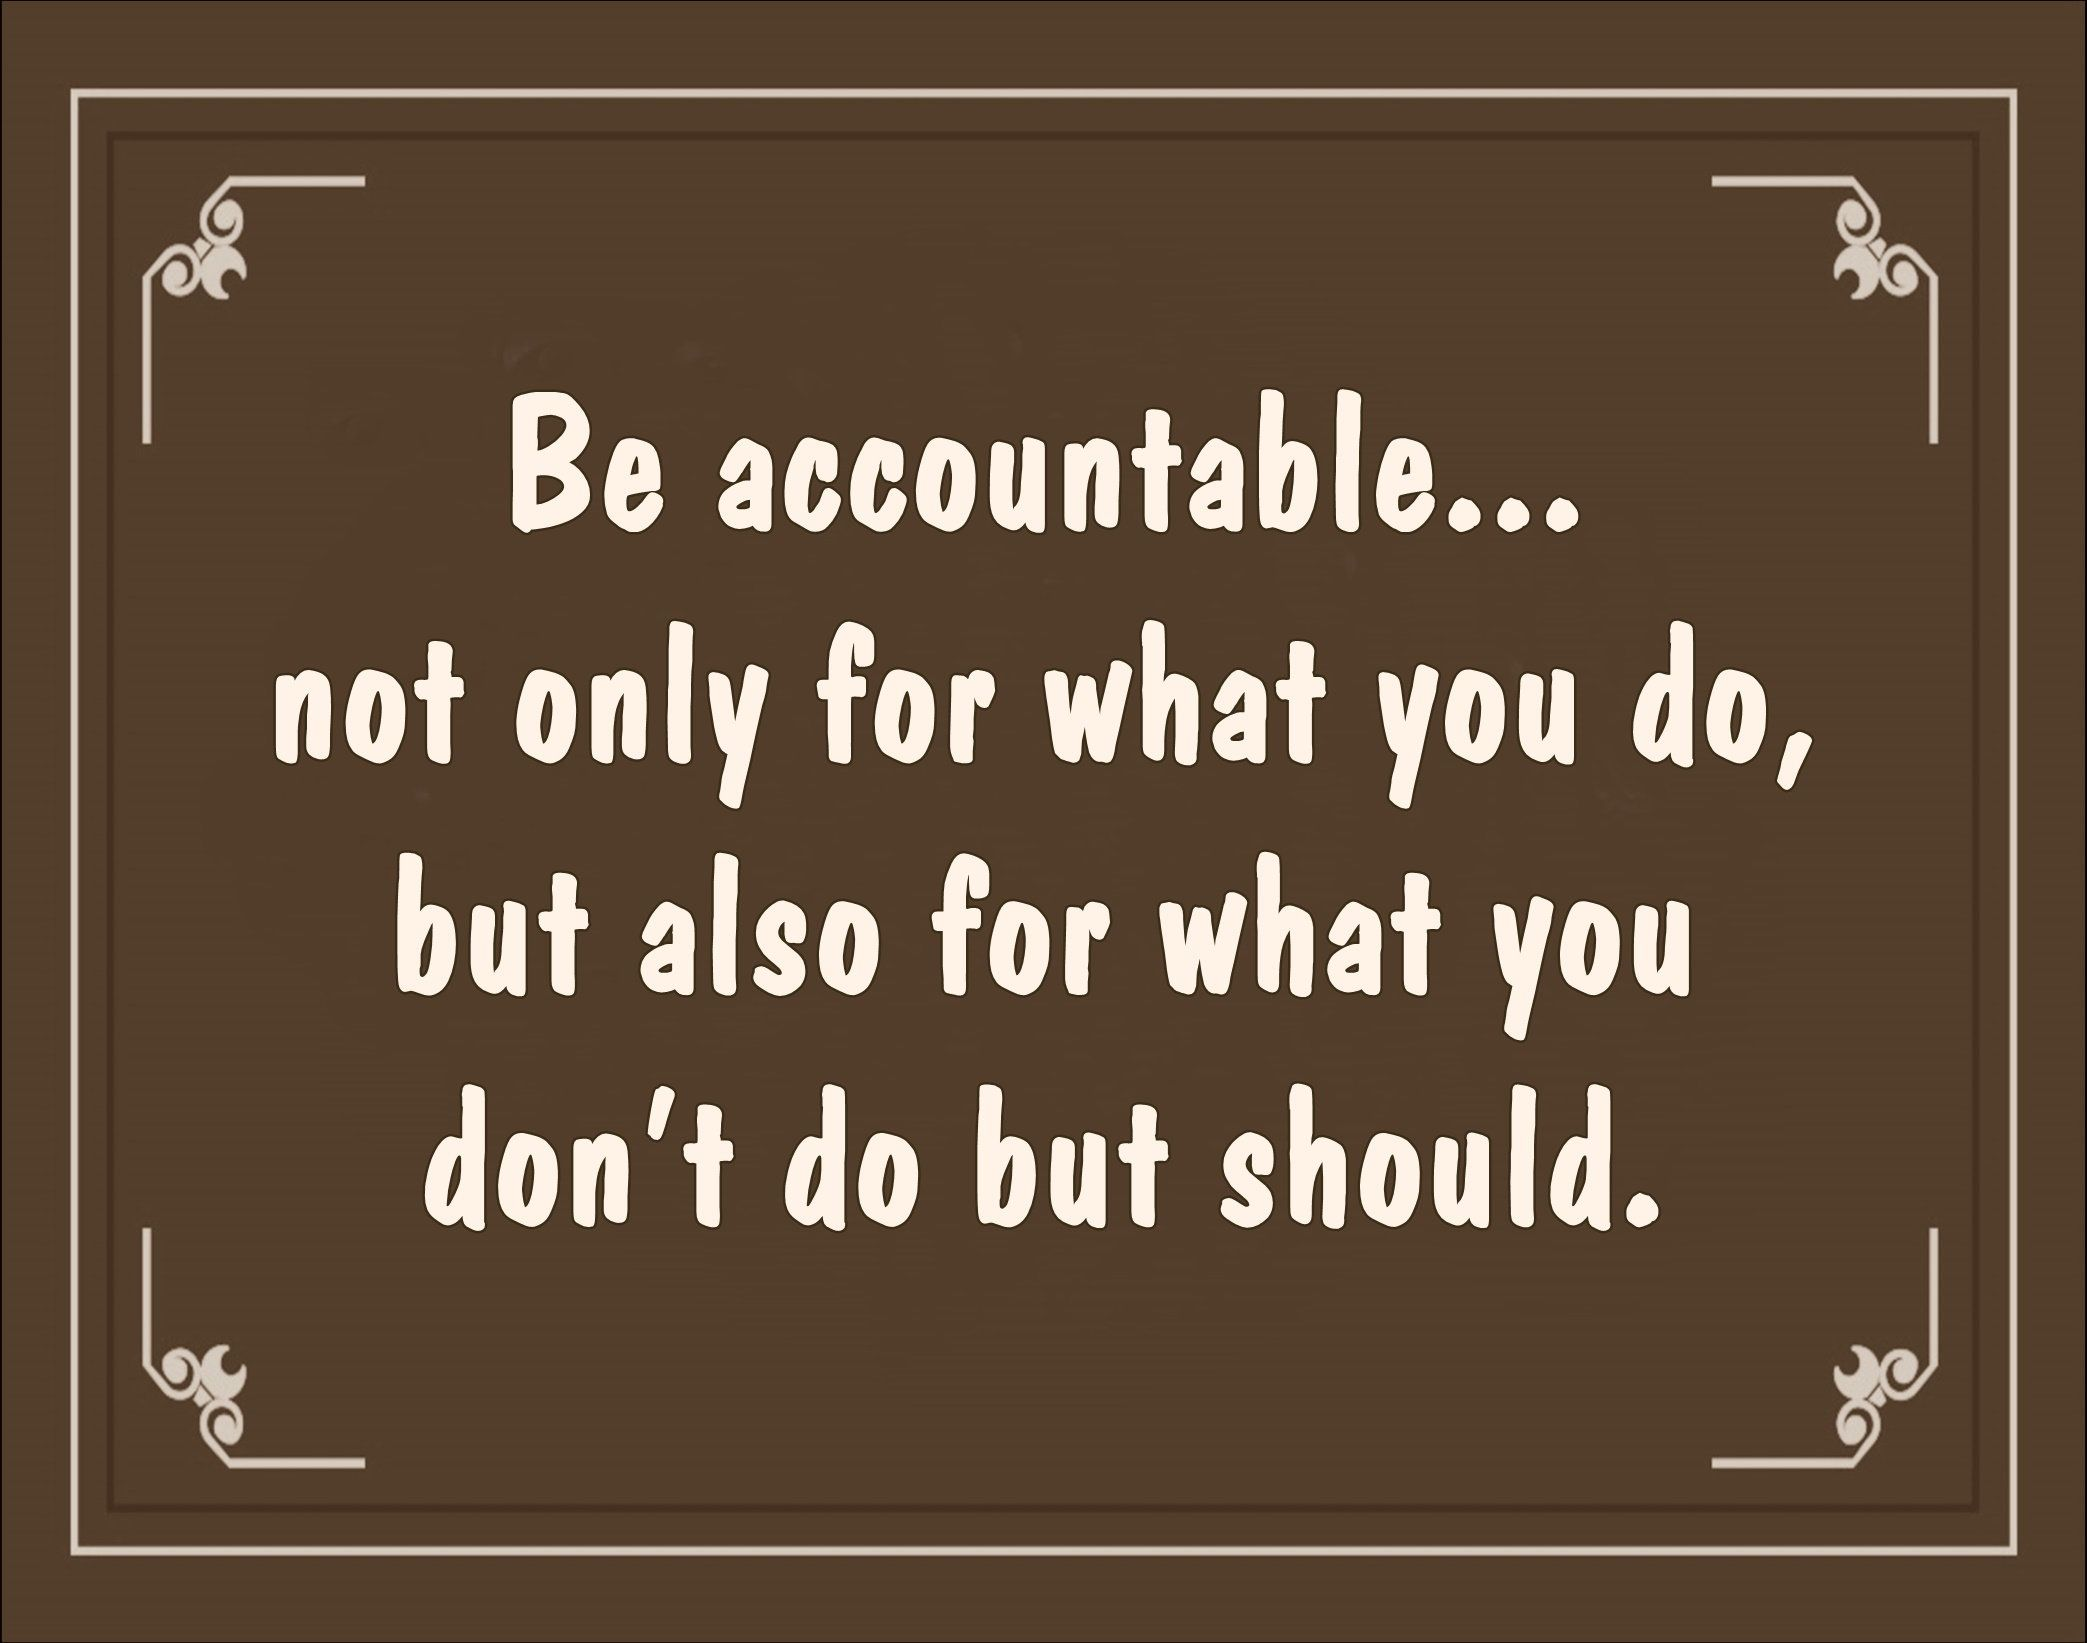 Printable Wall Art Accountable Quote Wall Decor Gift For Men Women Digital Download Poster Teacher Accountability Quotes Work Quotes Appreciation Quotes